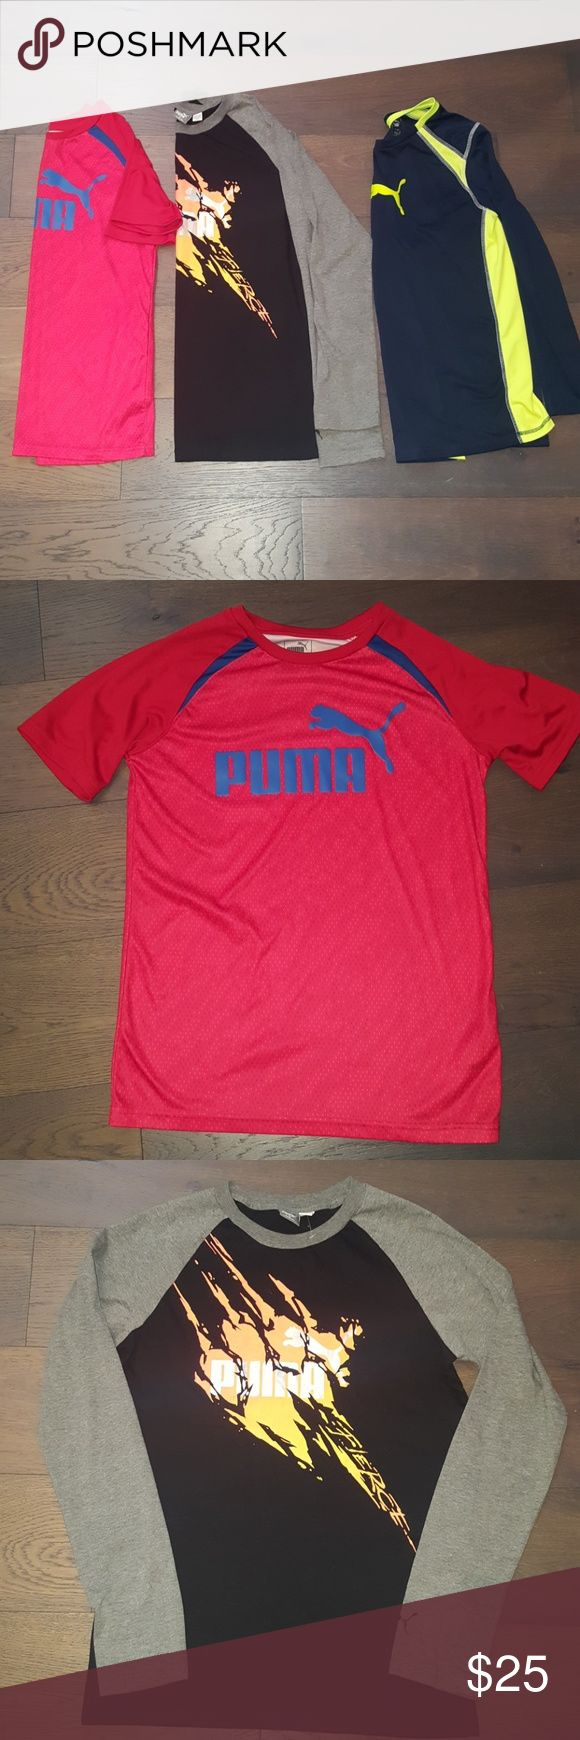 Boys Puma Shirt Set Junior Boys shirts in excellent condition. Selling as a 3 pc. My son grew out of them quickly and hardly wore them. Red and black shirt were never worn, no tags, blue one worn a few times.  Blk shirt is size XL (18-20) red and blue shirt size L (14-16). No stains, no holes, no rips. Puma Shirts & Tops Tees - Long Sleeve